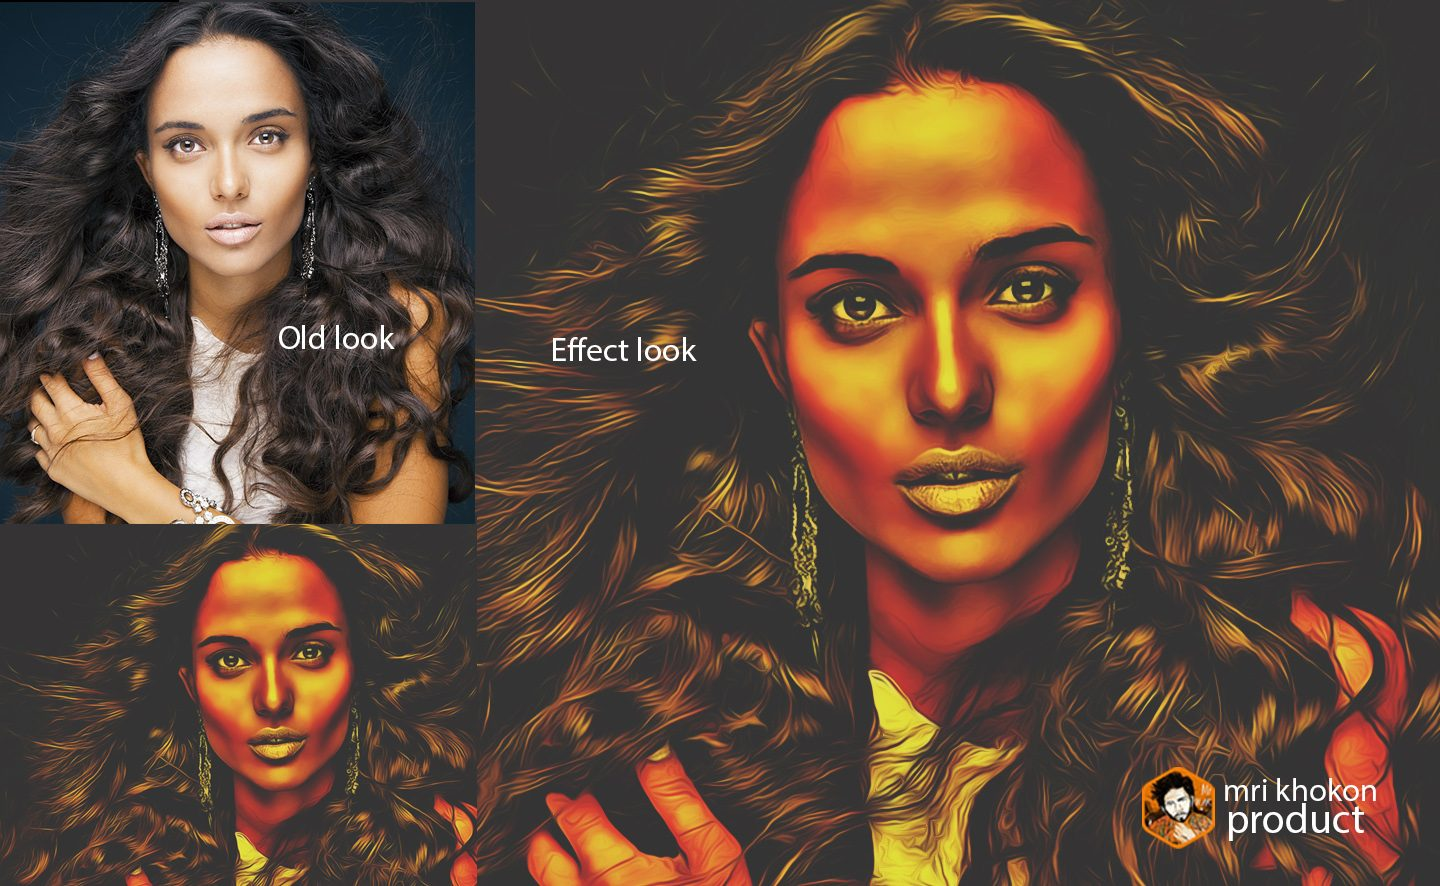 Gold Look Photoshop Effect example image 13